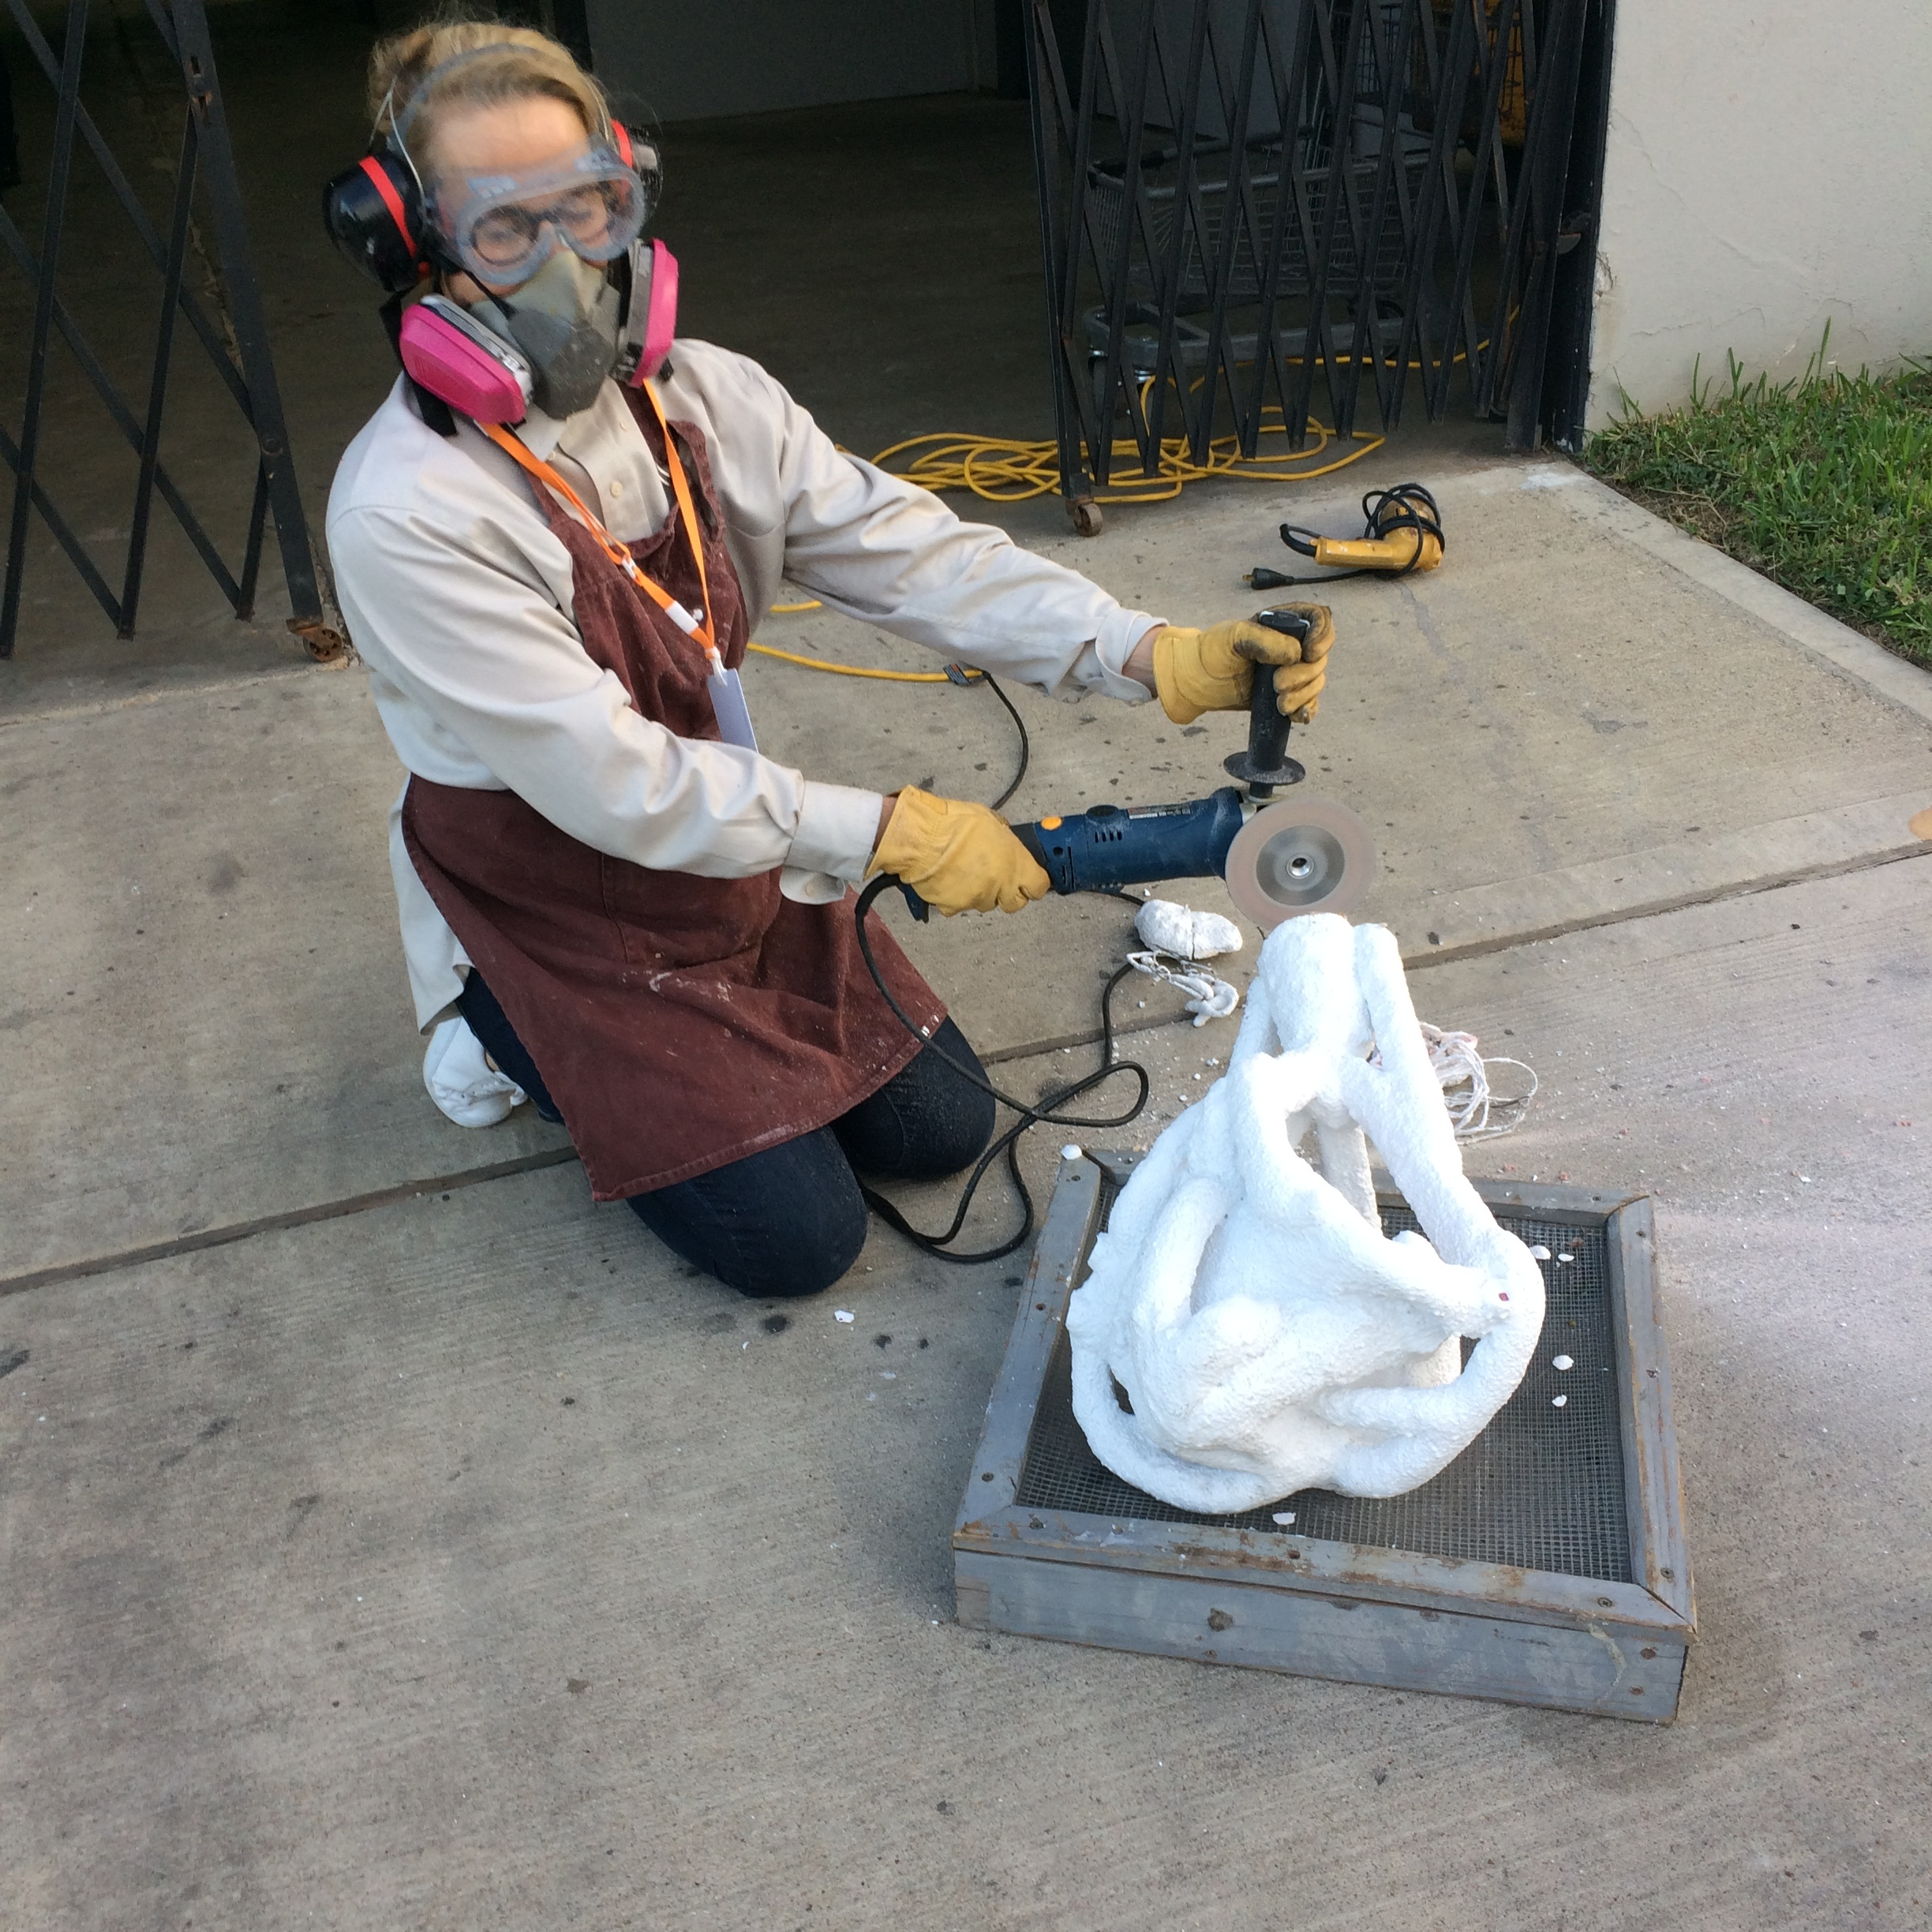 Here I am wearing ear and eye protection, a respirator and using my angle grinder with a diamond blade to cut off the top of the cup and blind vents.